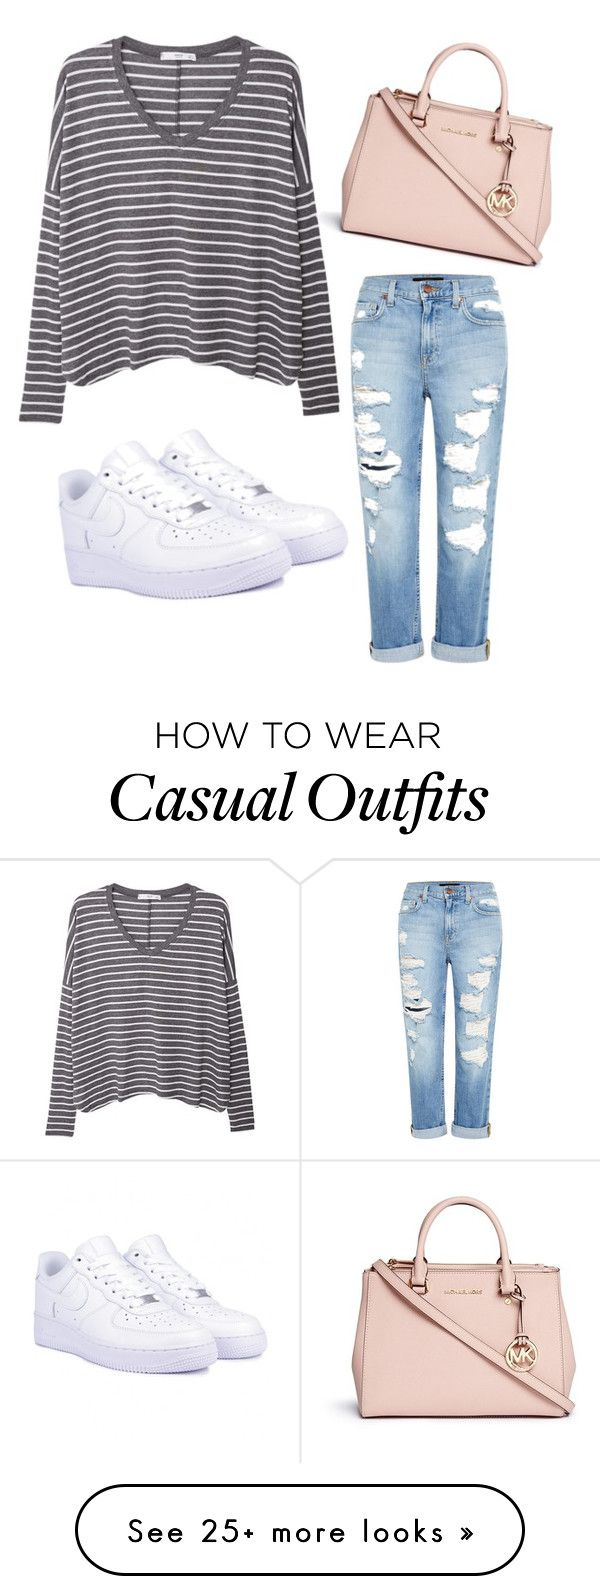 """casual casual"" by kenzwagner on Polyvore featuring MANGO, Genetic Denim, NIKE and Michael Kors"